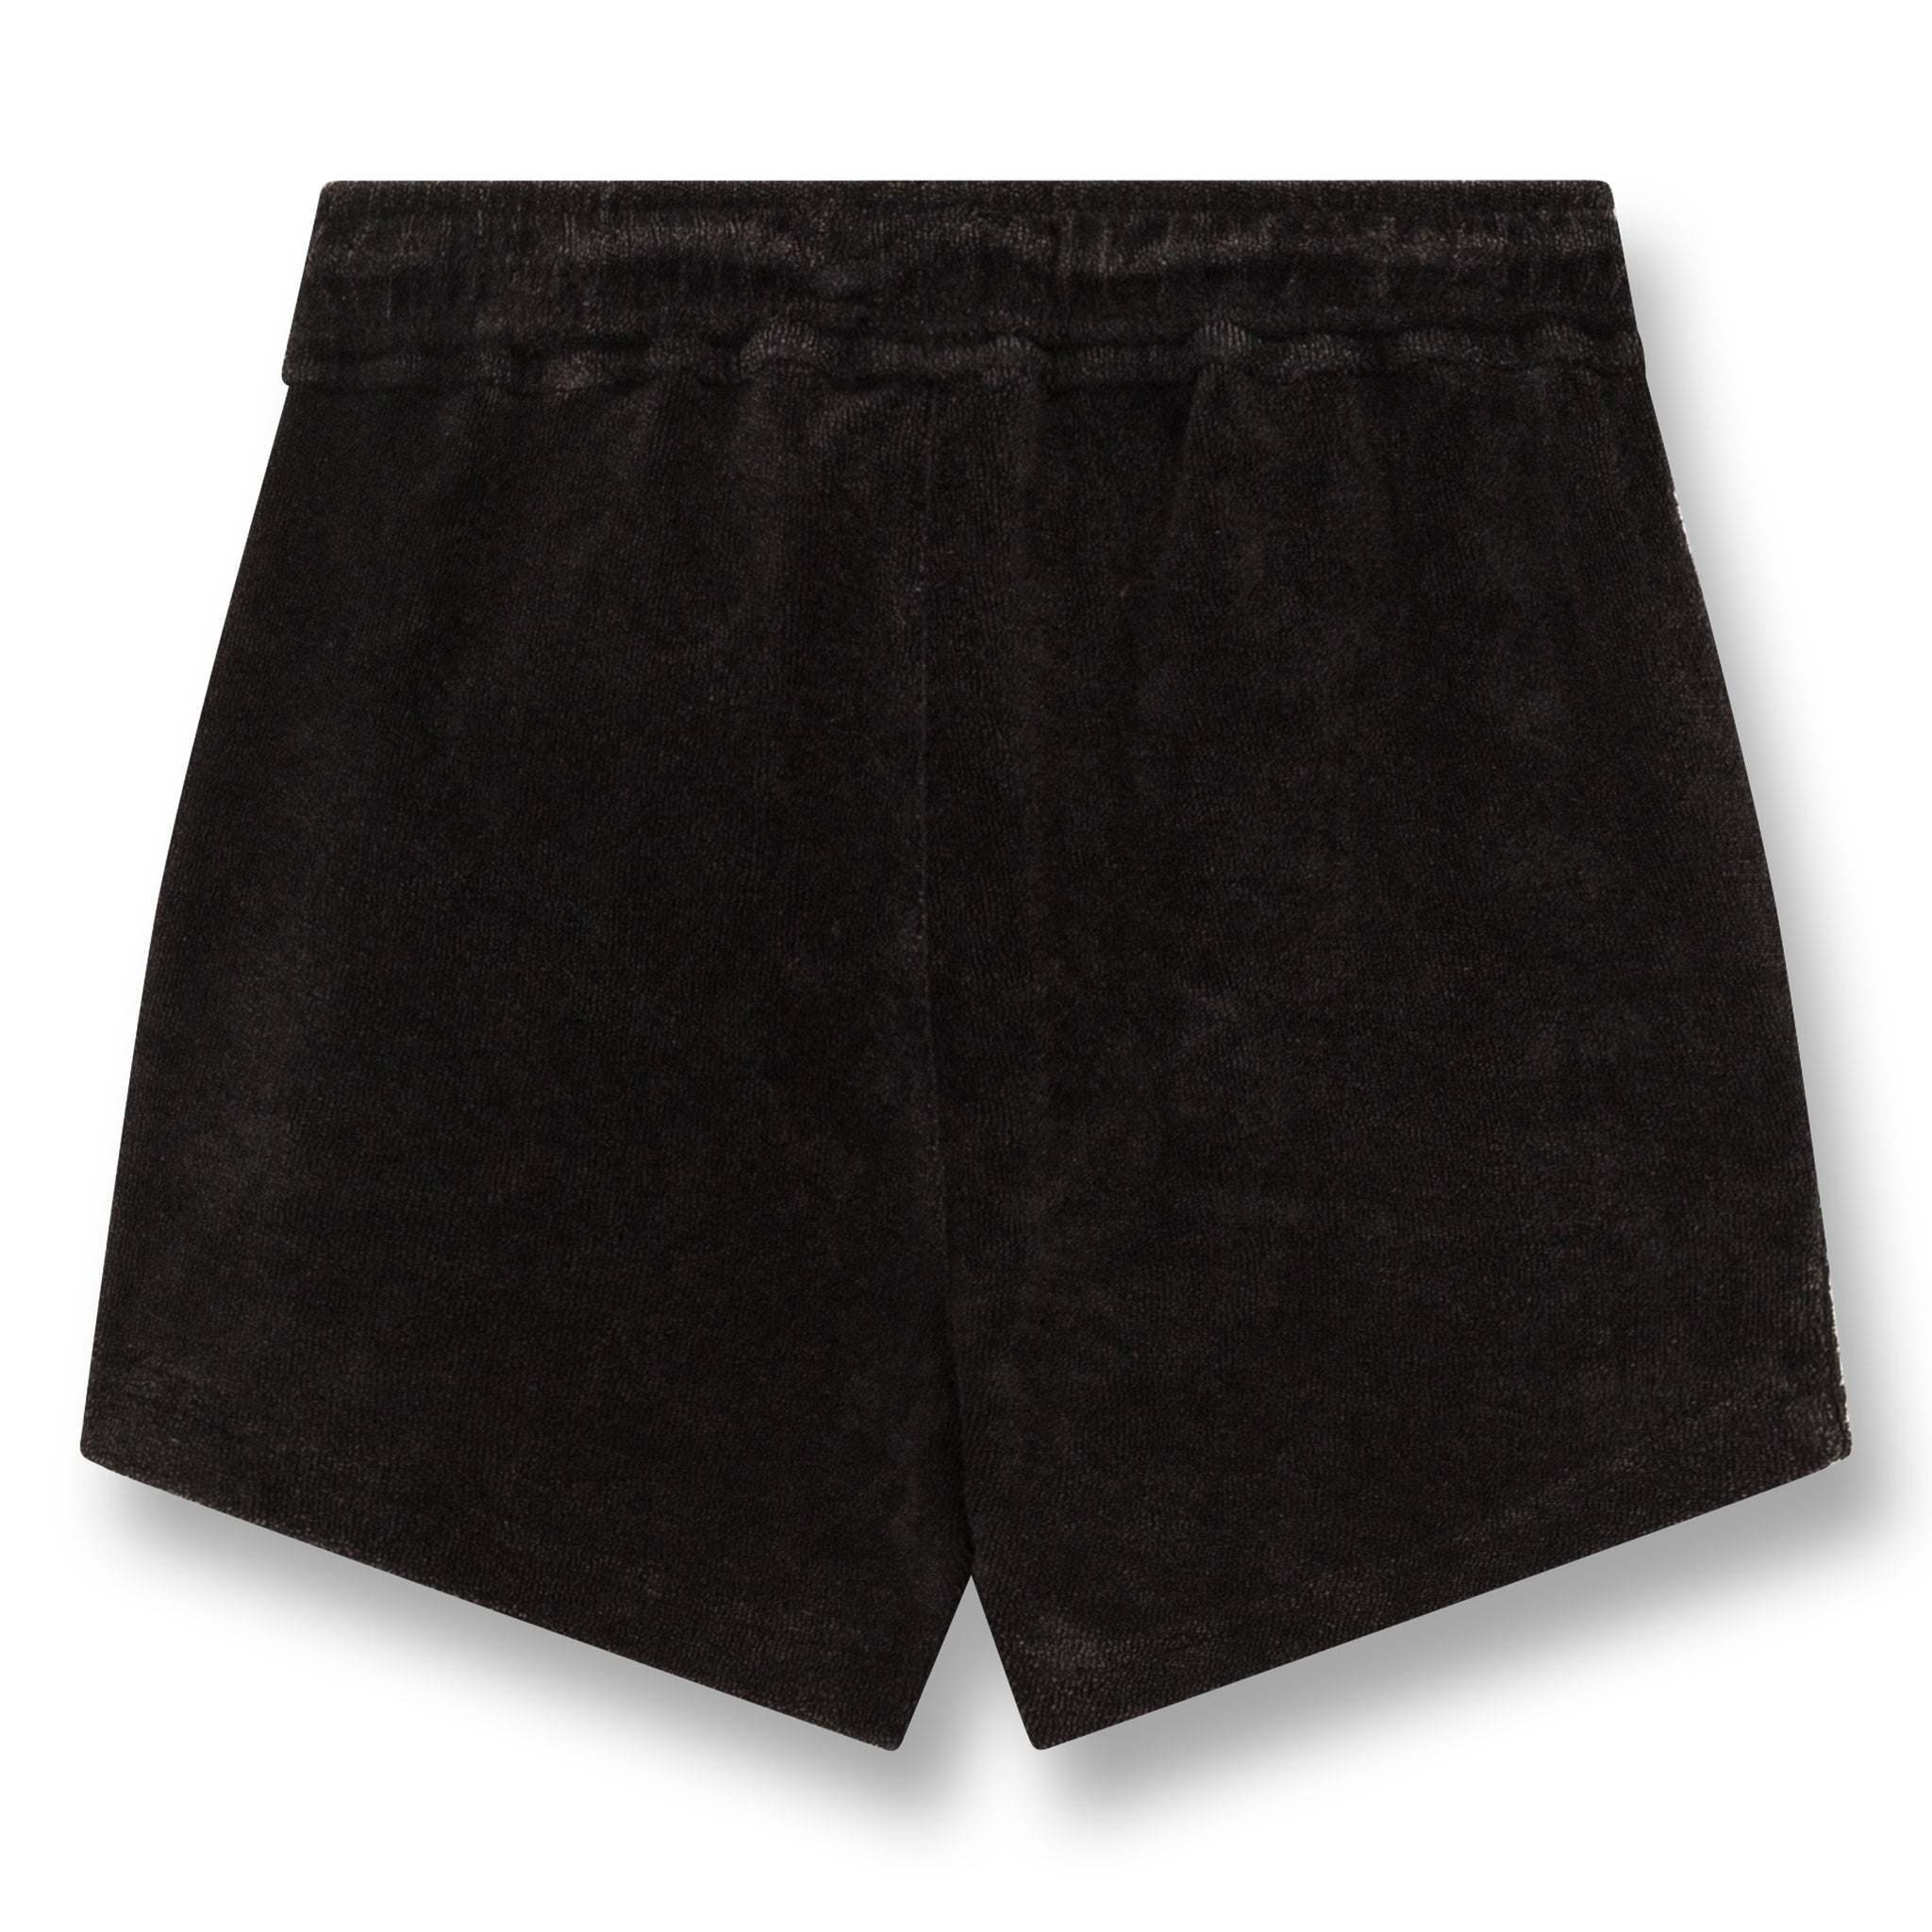 TRINITY Vintage Black - Mini Shorts 2